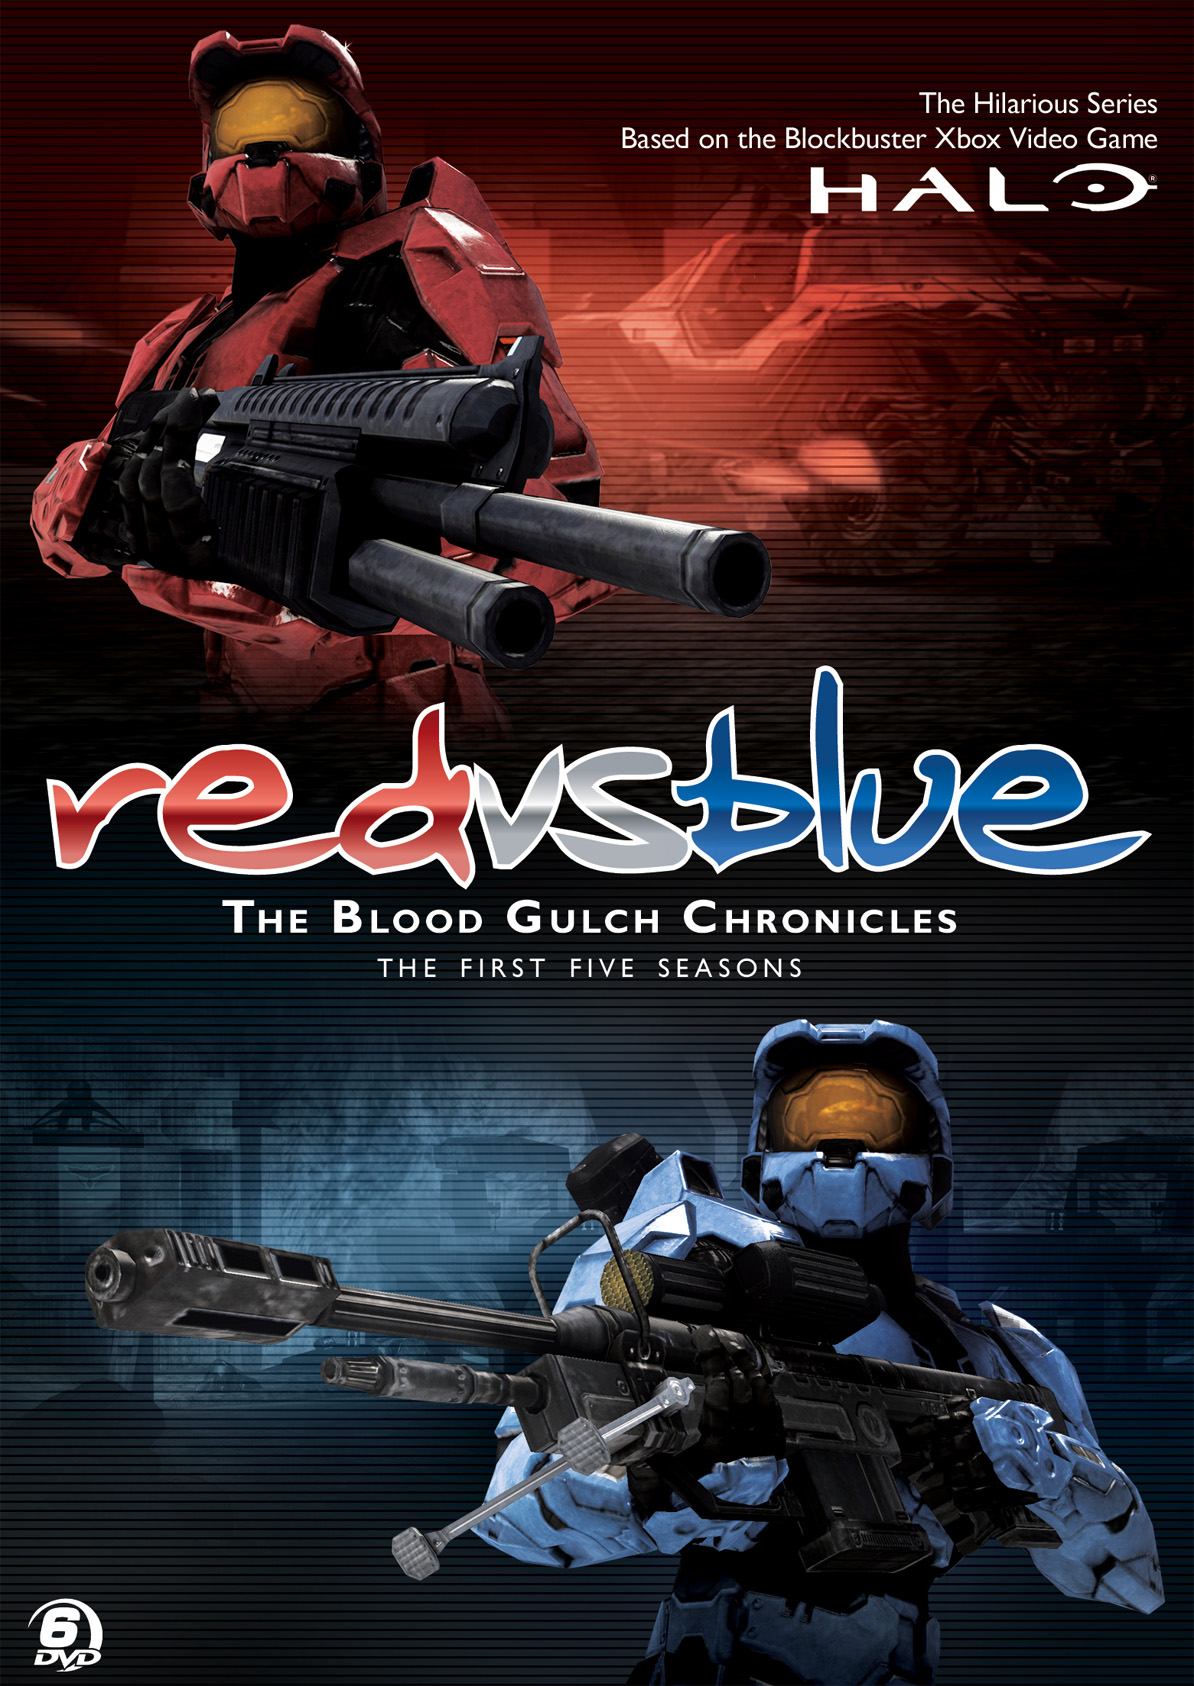 Gamers Quotes Wallpaper Red Vs Blue The Blood Gulch Chronicles The First Five